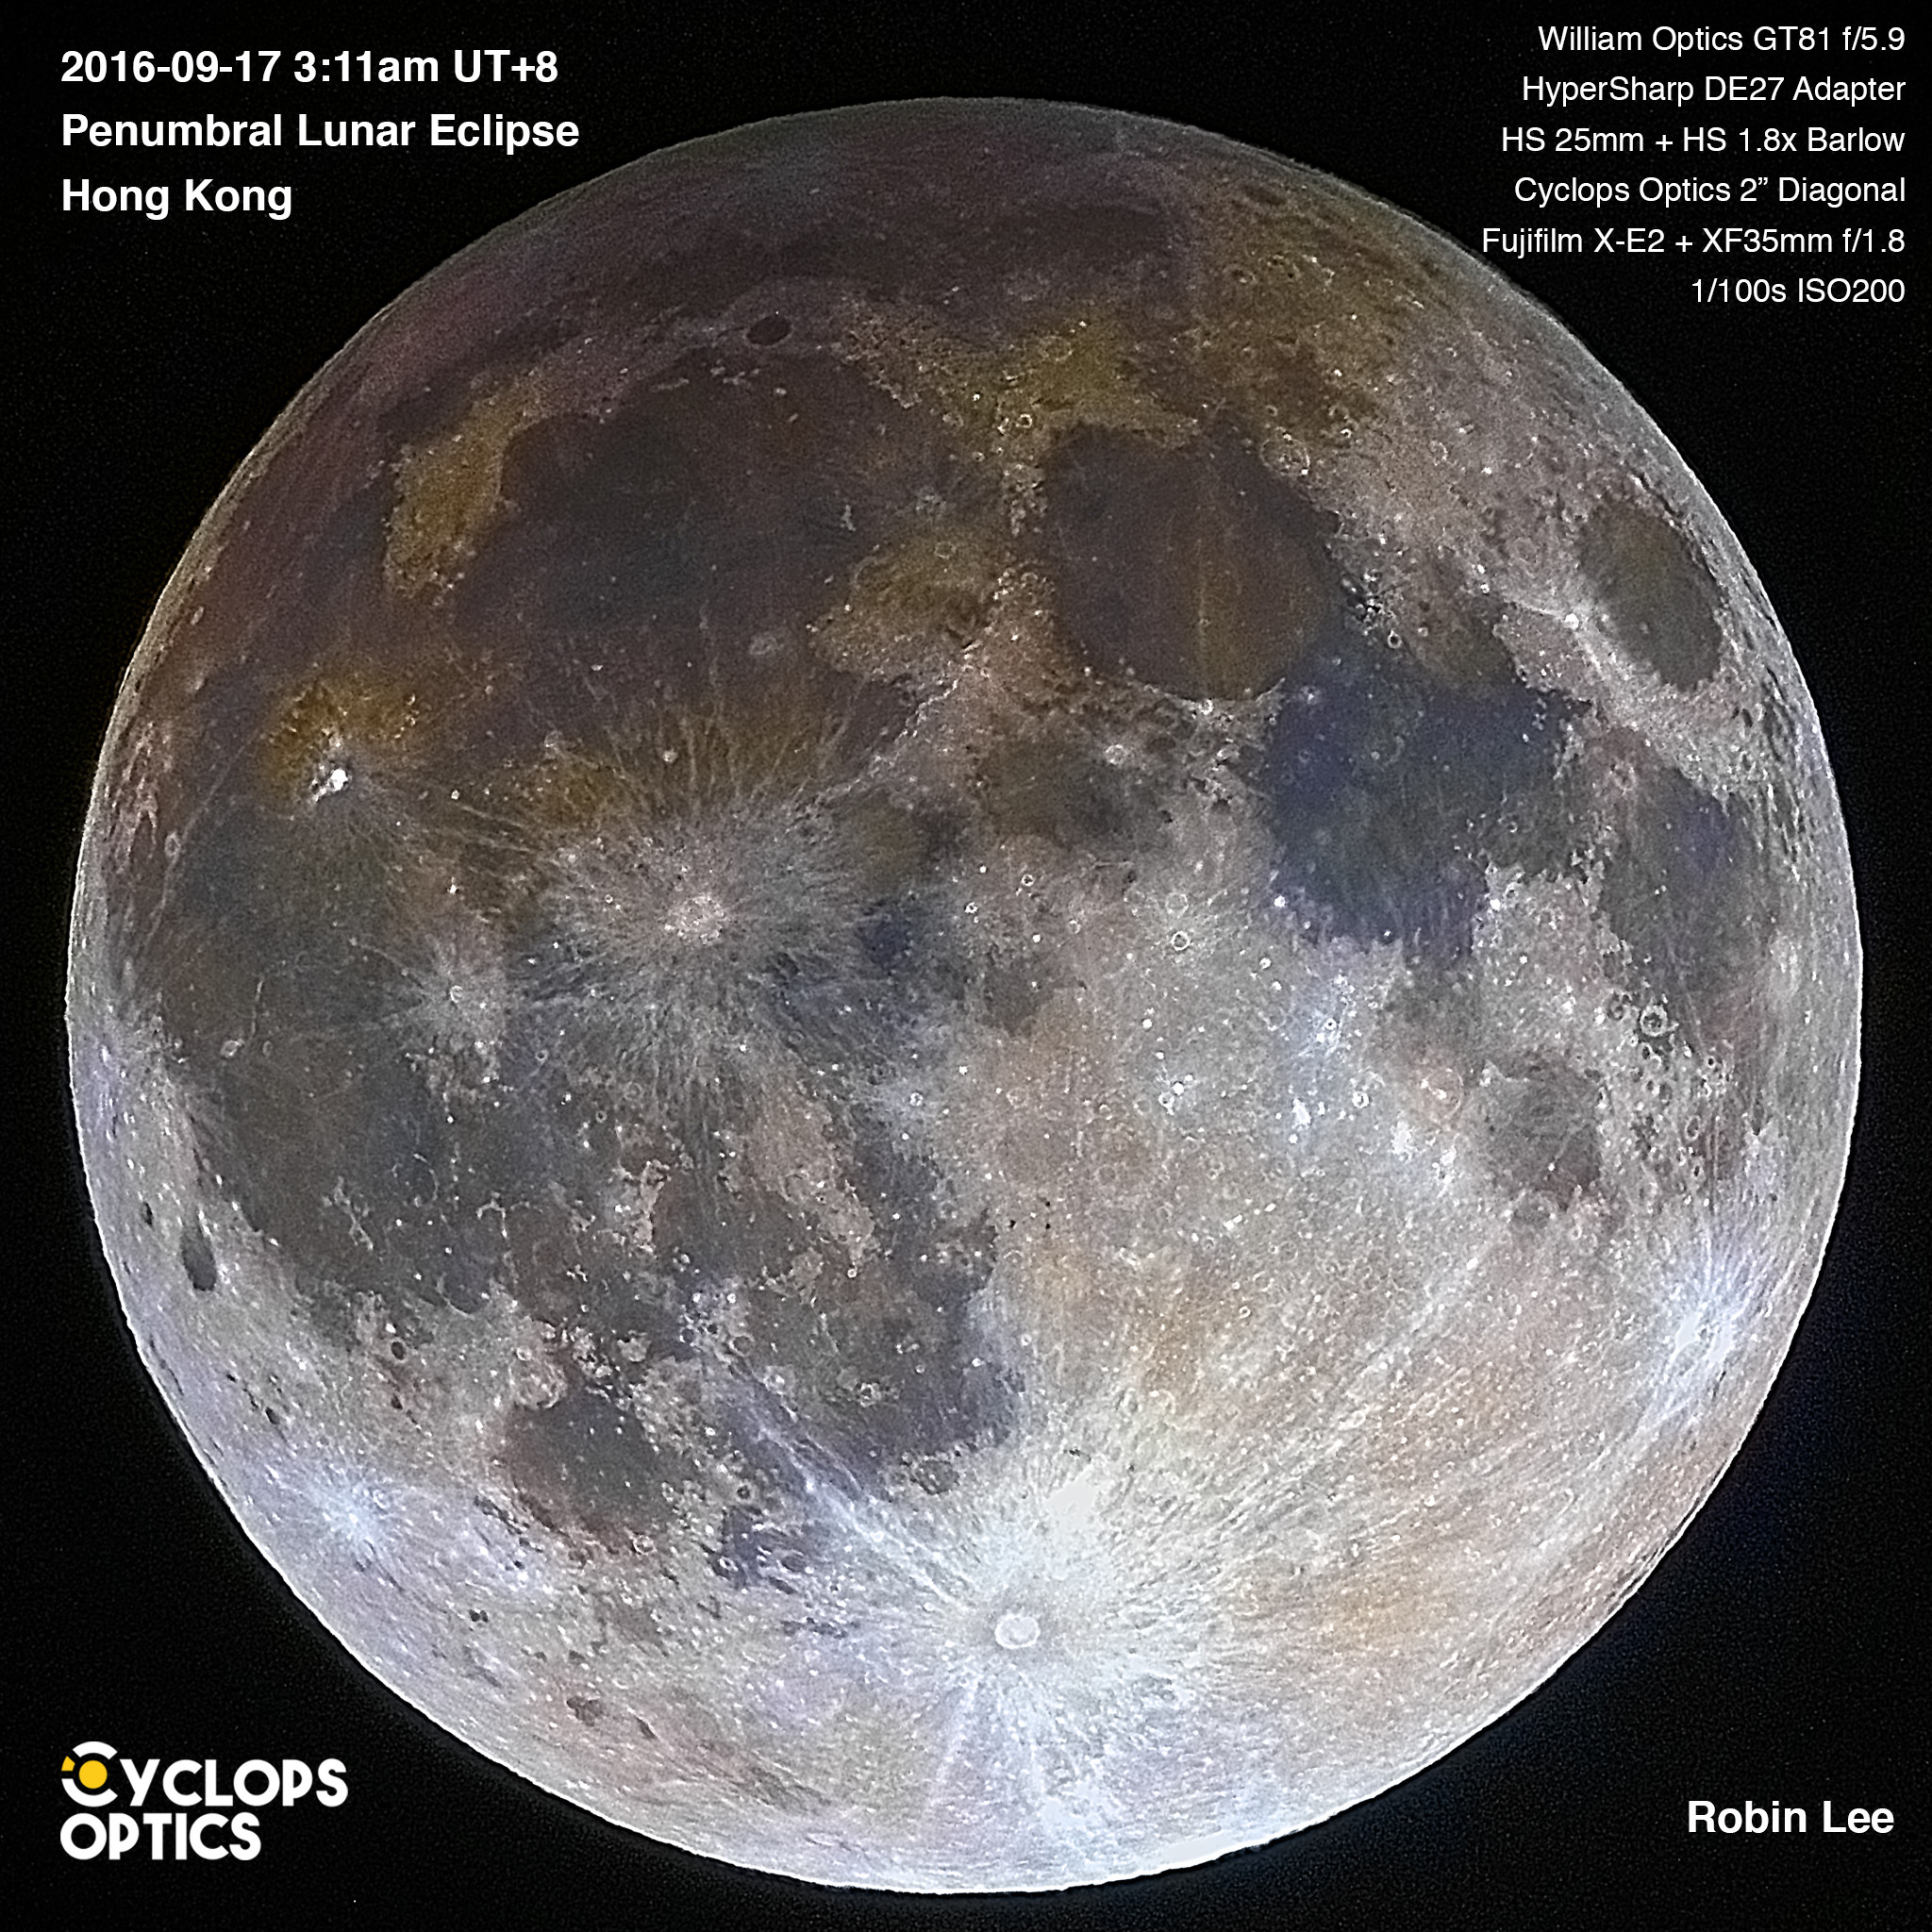 20160917-penumbral-lunar-eclipse-co-robin-lee-2048px.jpg